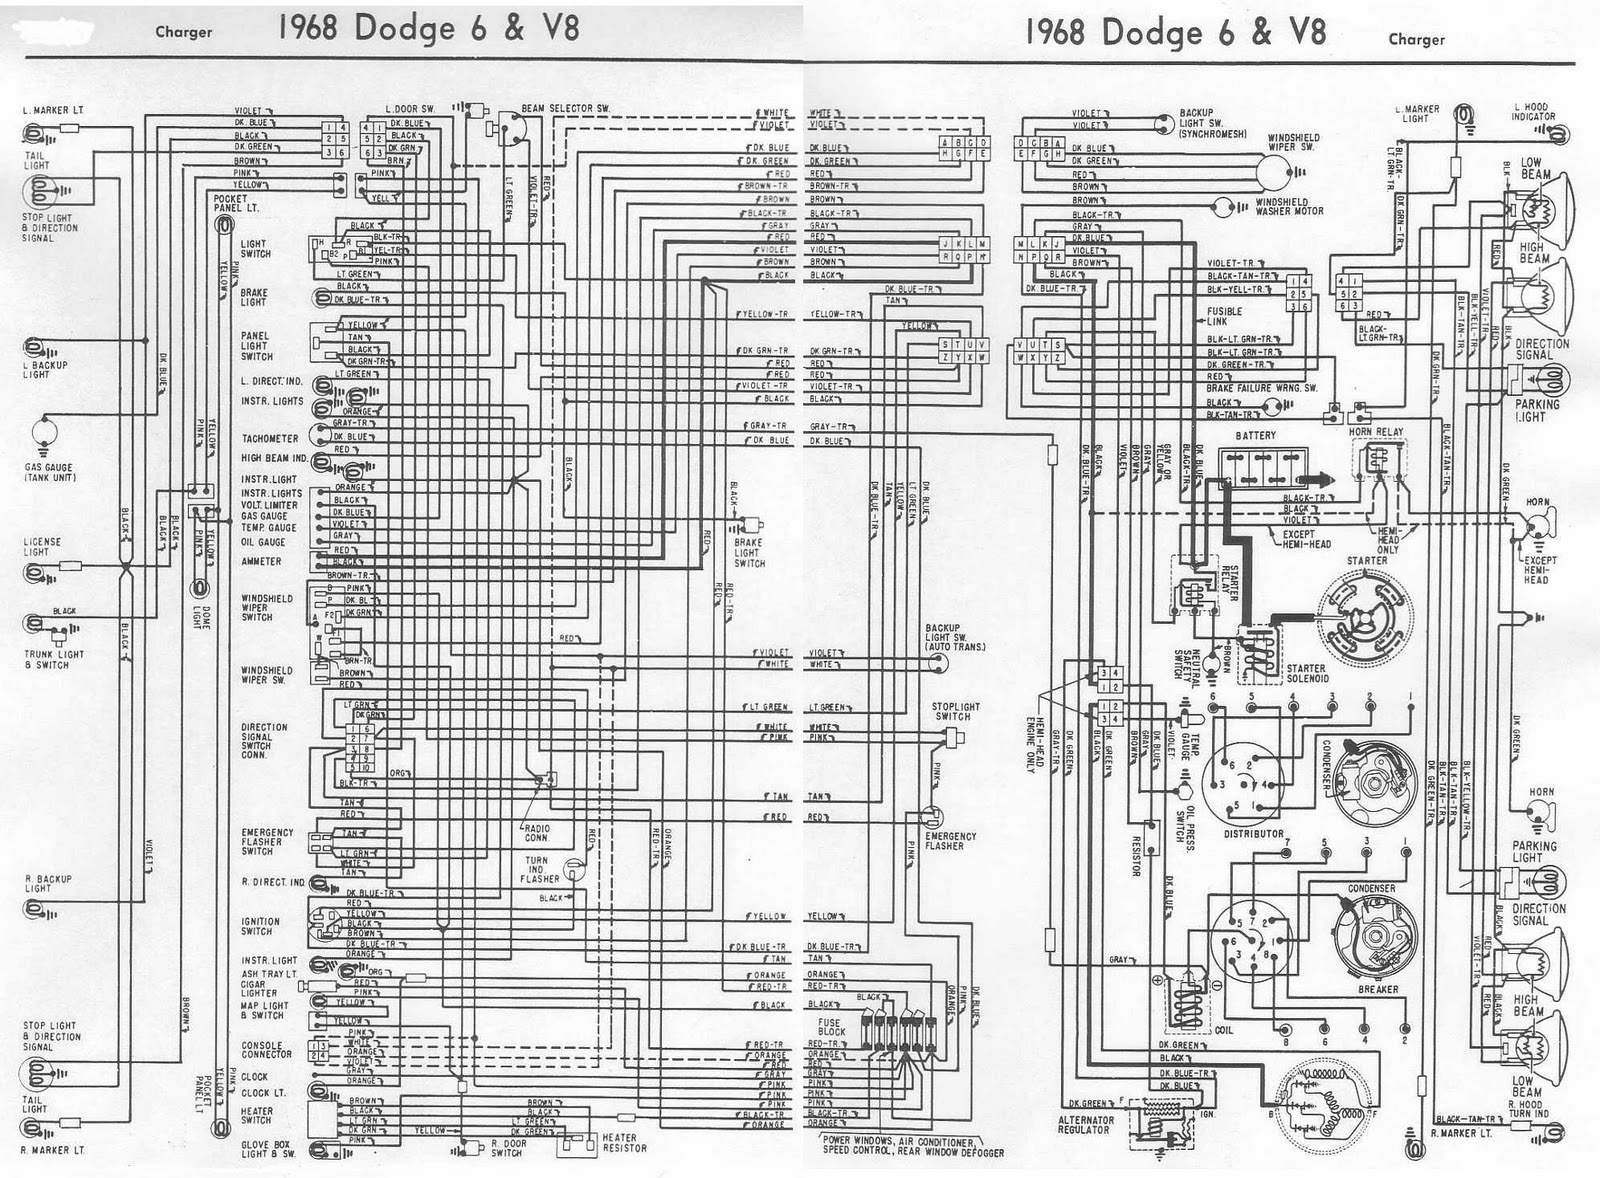 Dodge+Charger+1968+6+and+V8+Complete+Electrical+Wiring+Diagram dodge charger wiring diagram dodge wiring diagrams instruction 1970 dodge coronet wiring diagram at beritabola.co